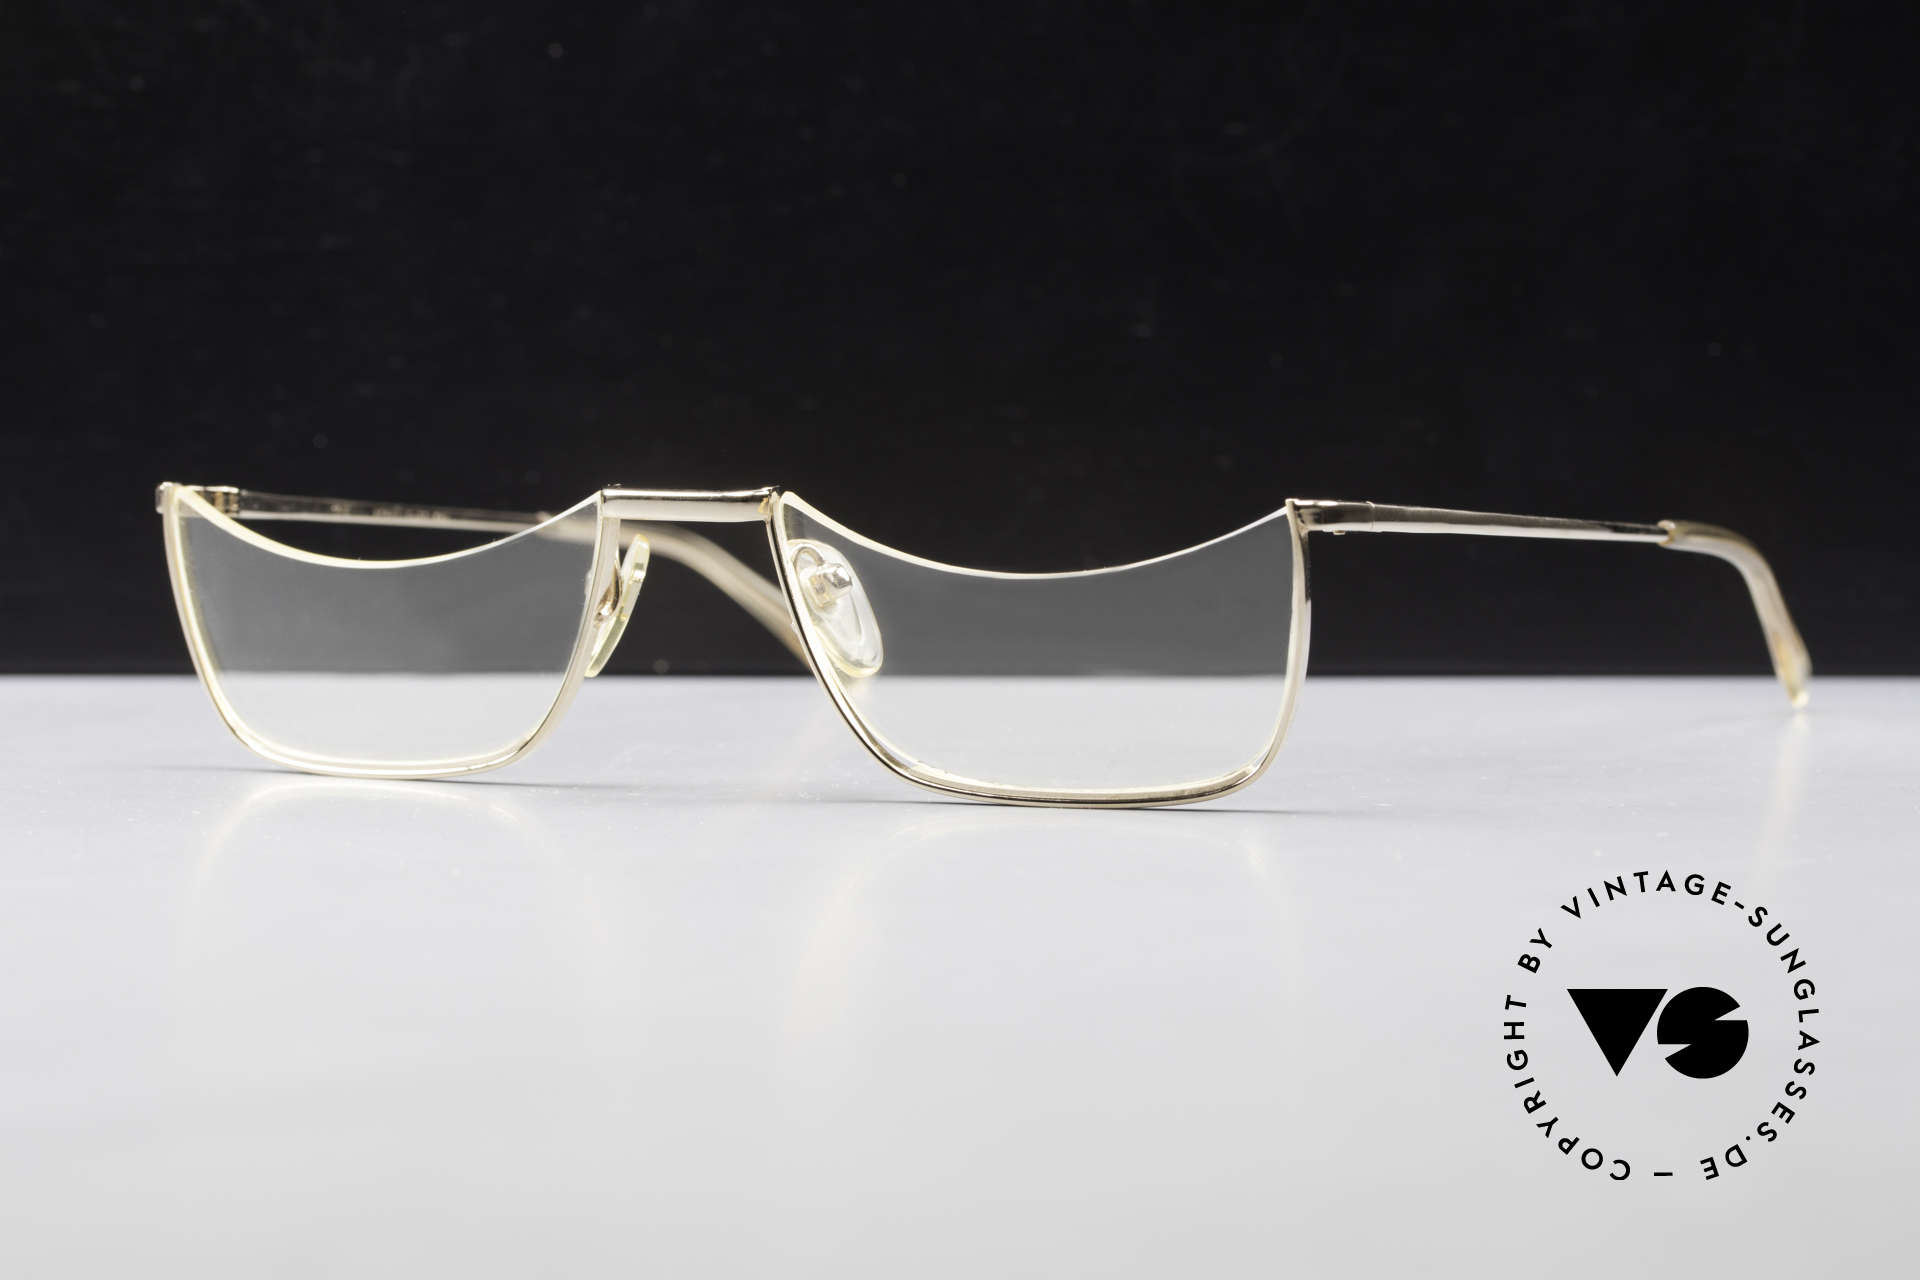 Norville Polymil Antique Reading Glasses 60's, NO NYLOR: experts / opticians know the meaning, Made for Men